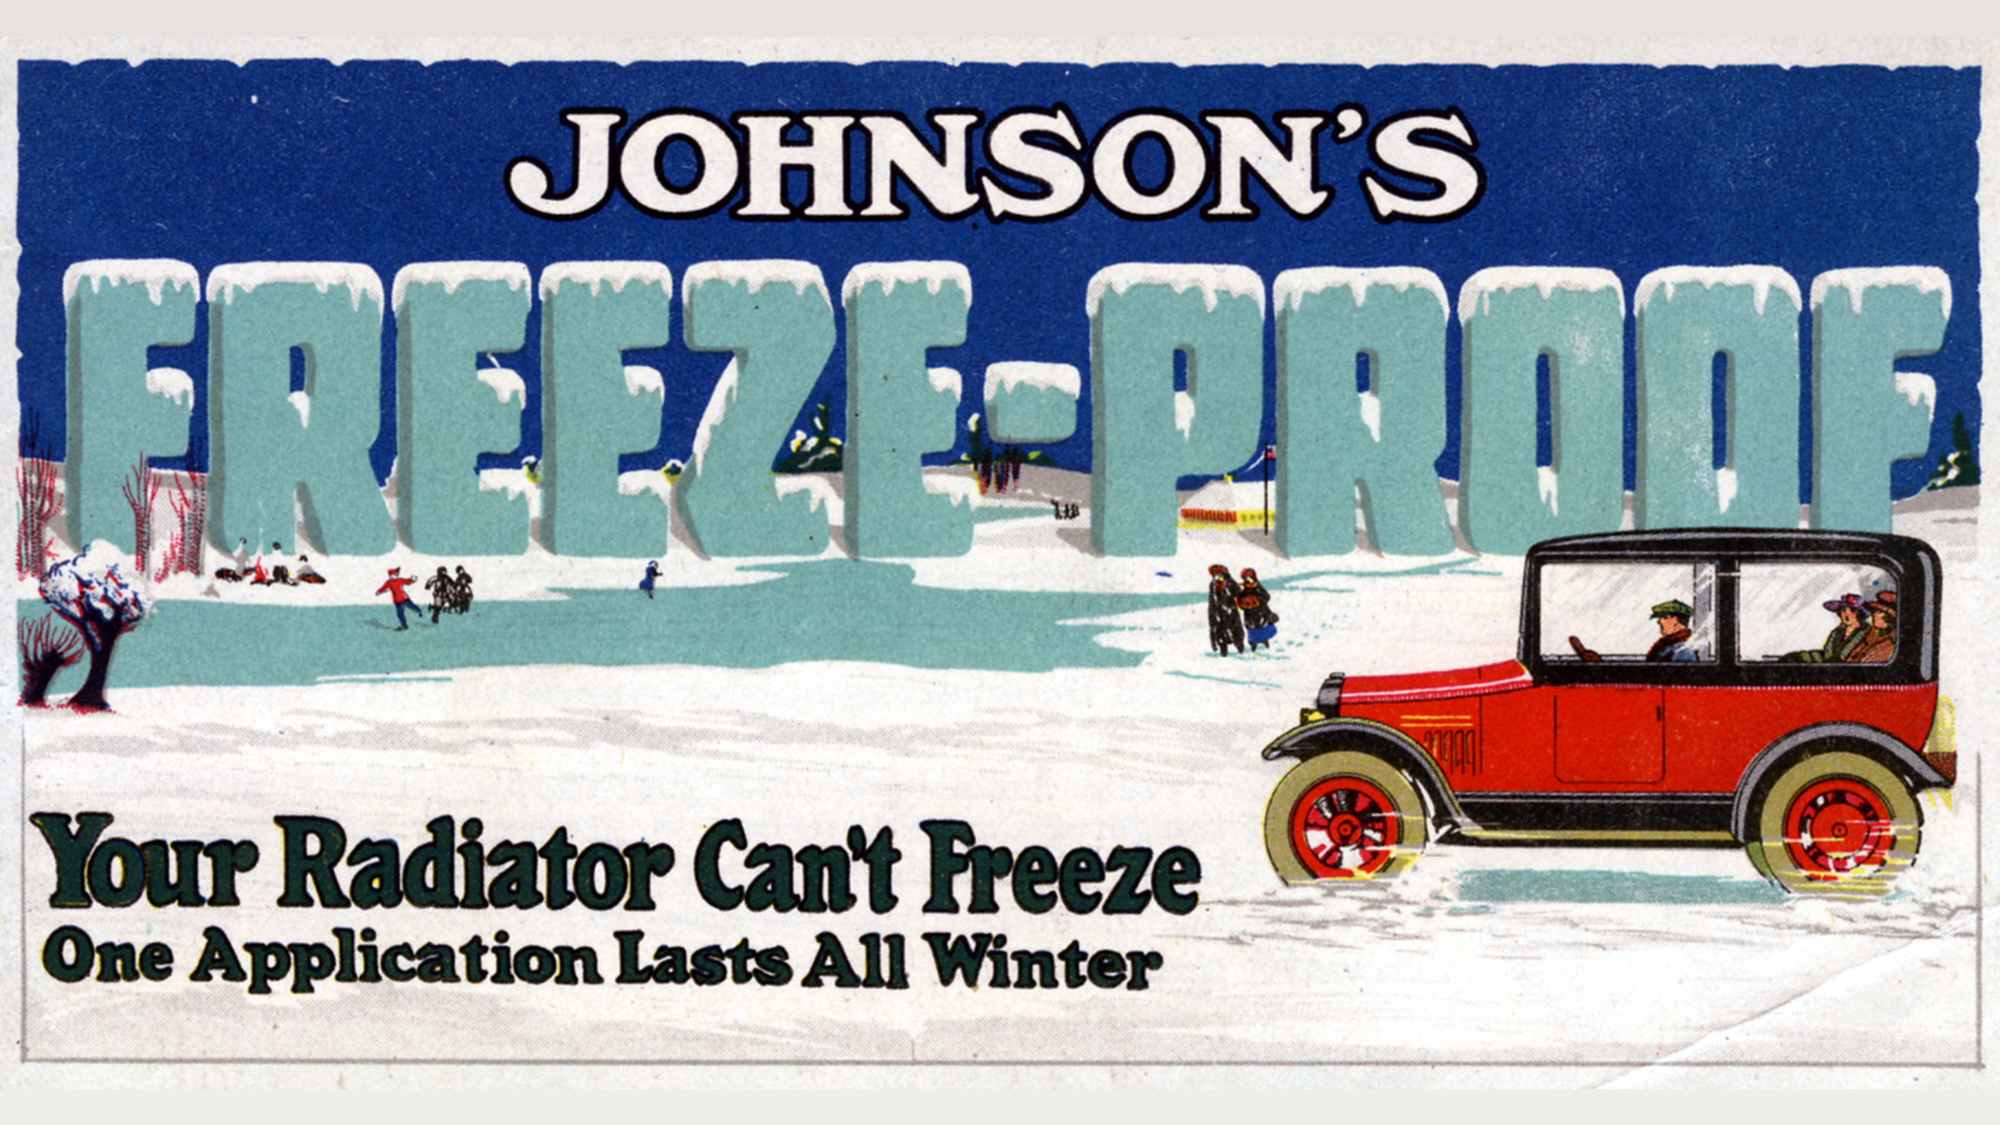 Publicité rétro de 1918 pour le Freeze Proof de Johnson